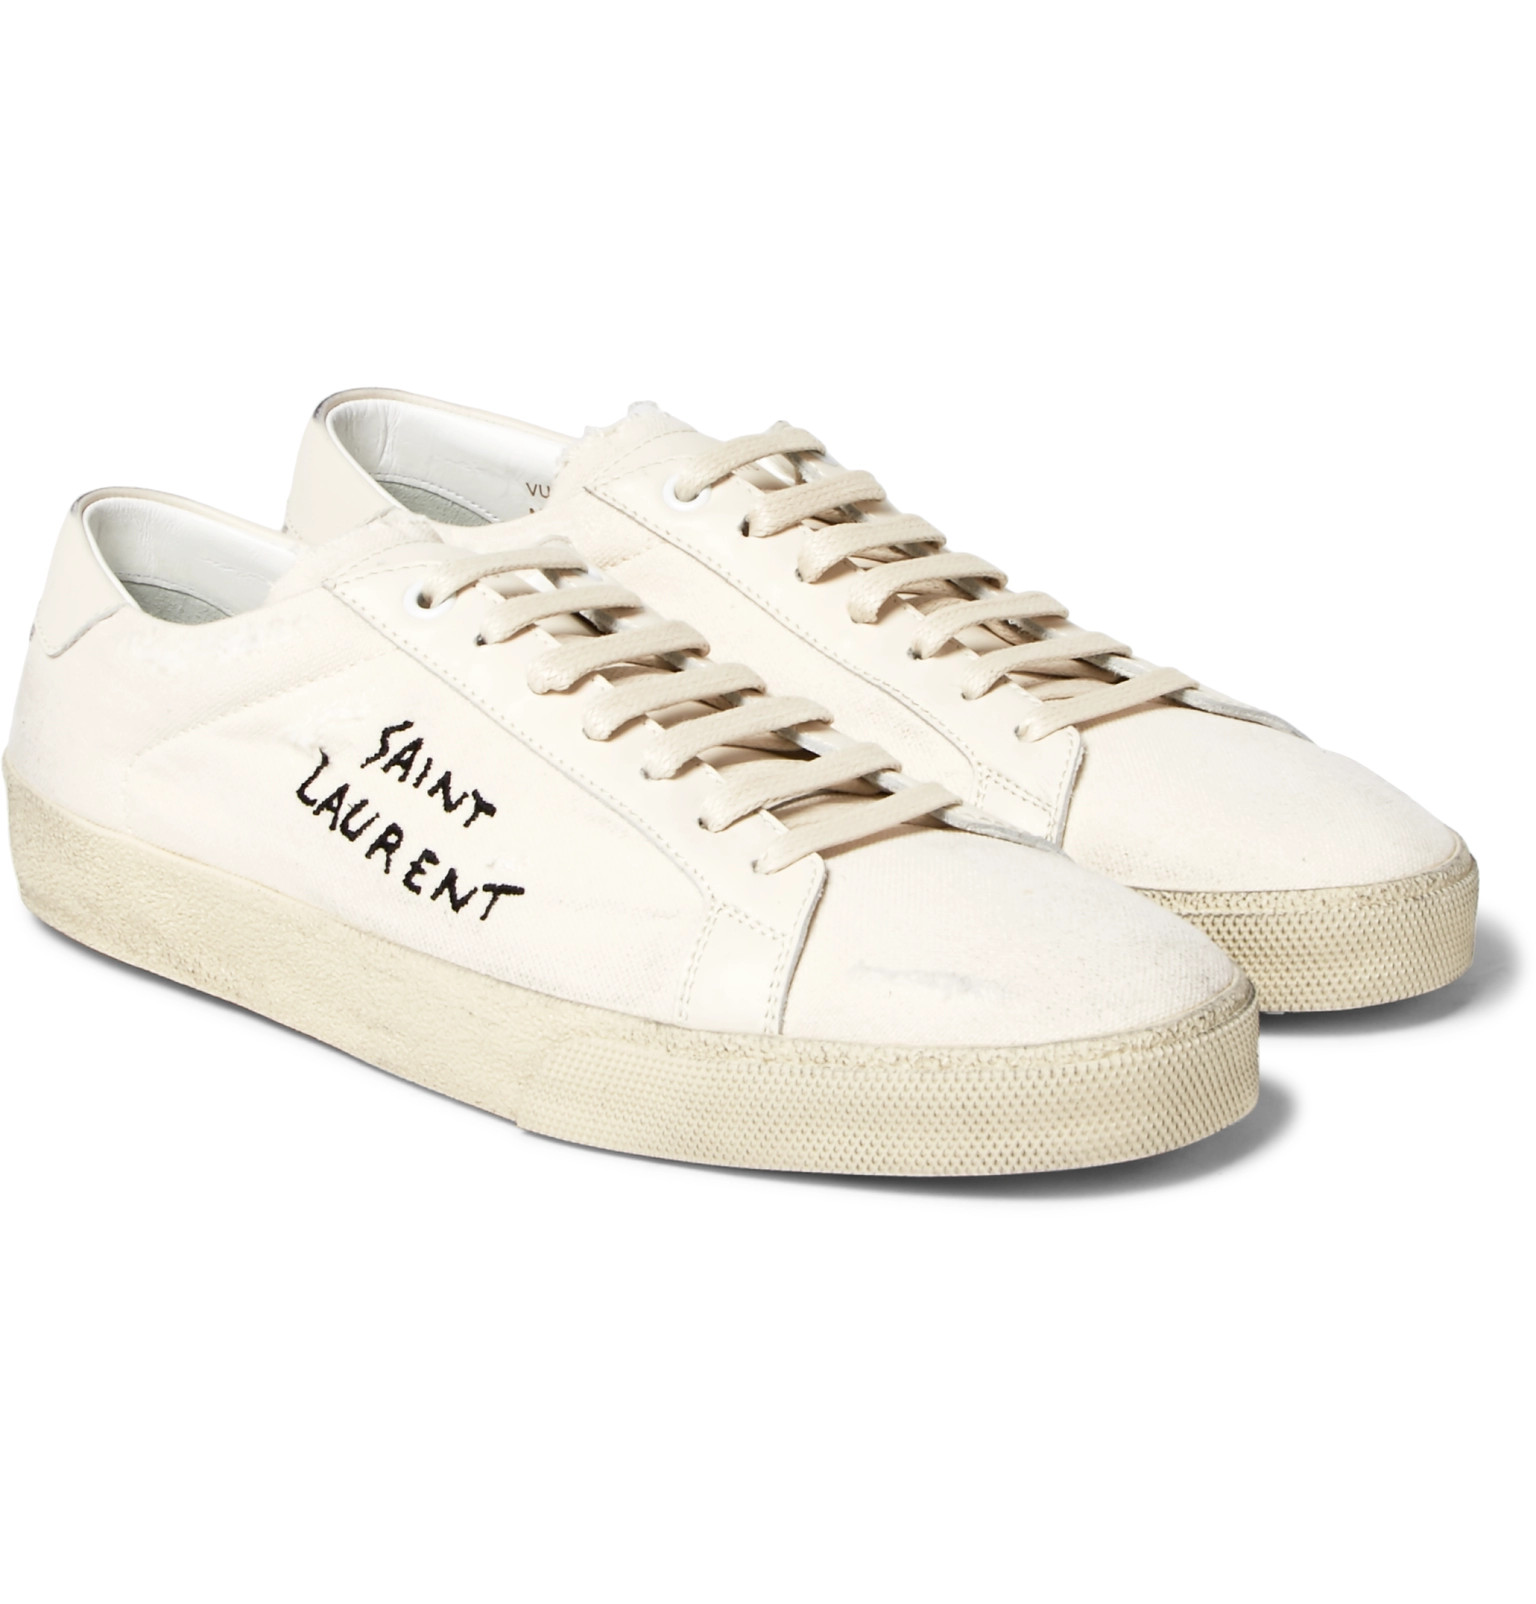 Saint Laurent Beige Embroidered Court Classic Sneakers